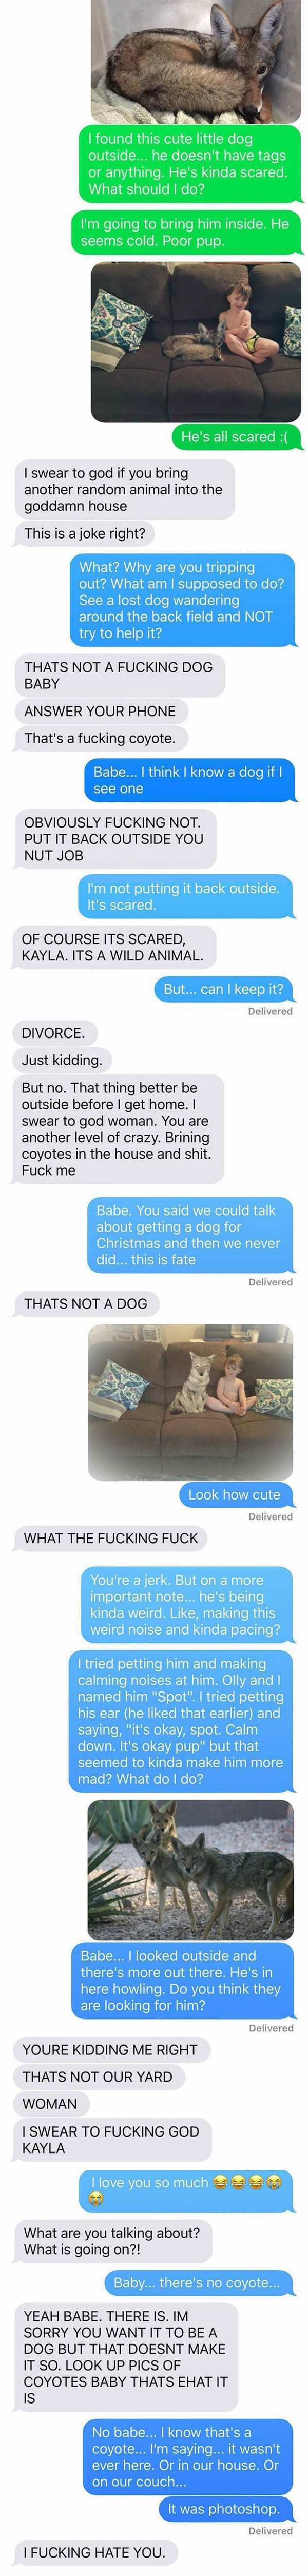 funny picture of husband texting wife about coyote with photoshop